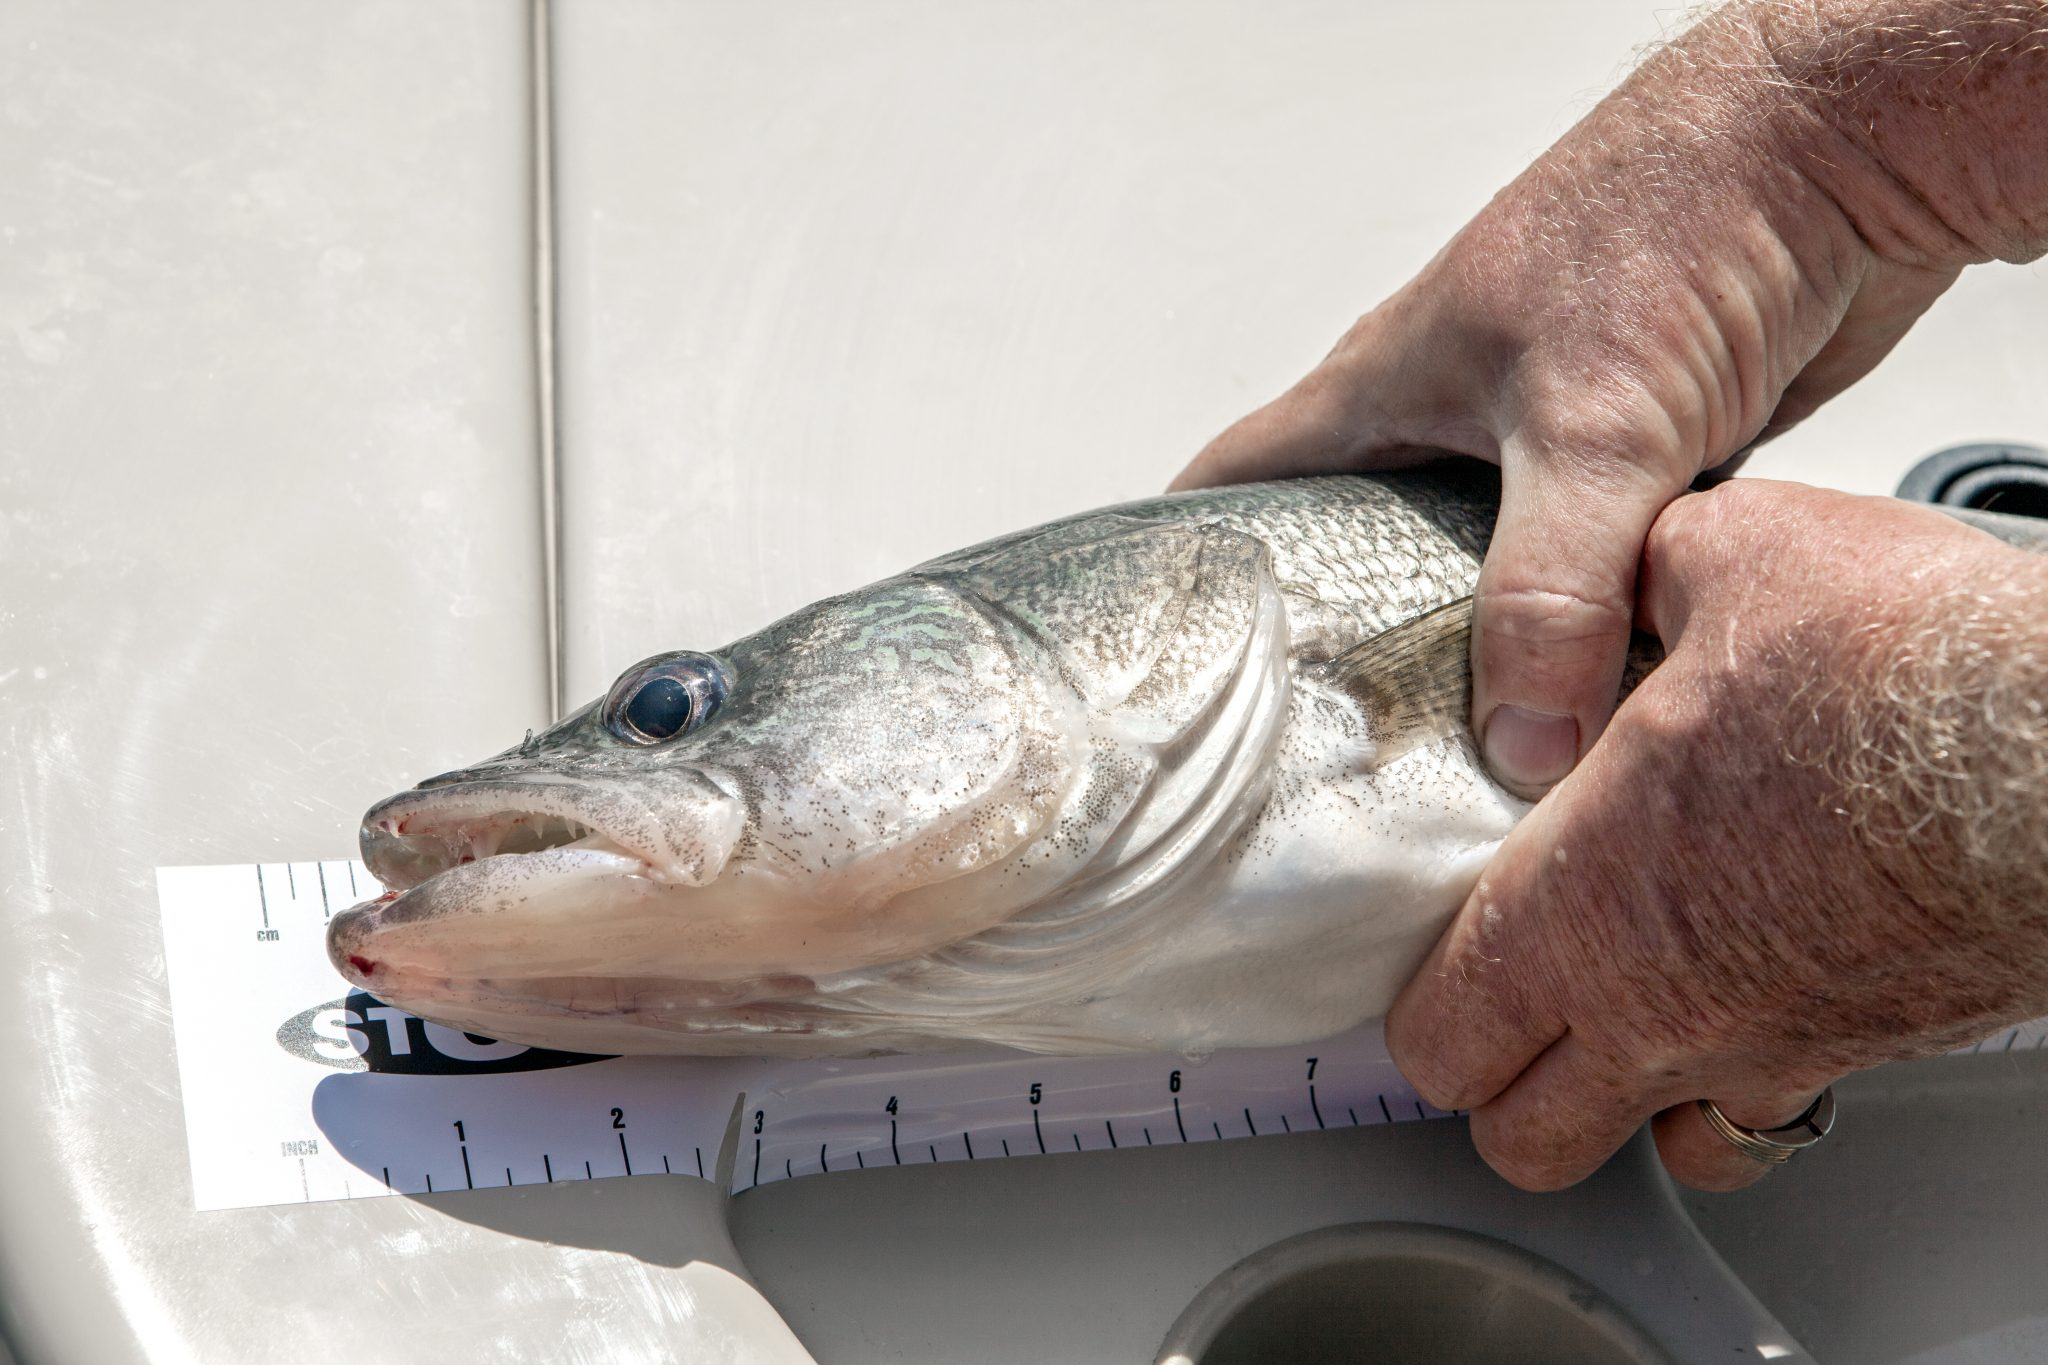 Measuring a caught fish